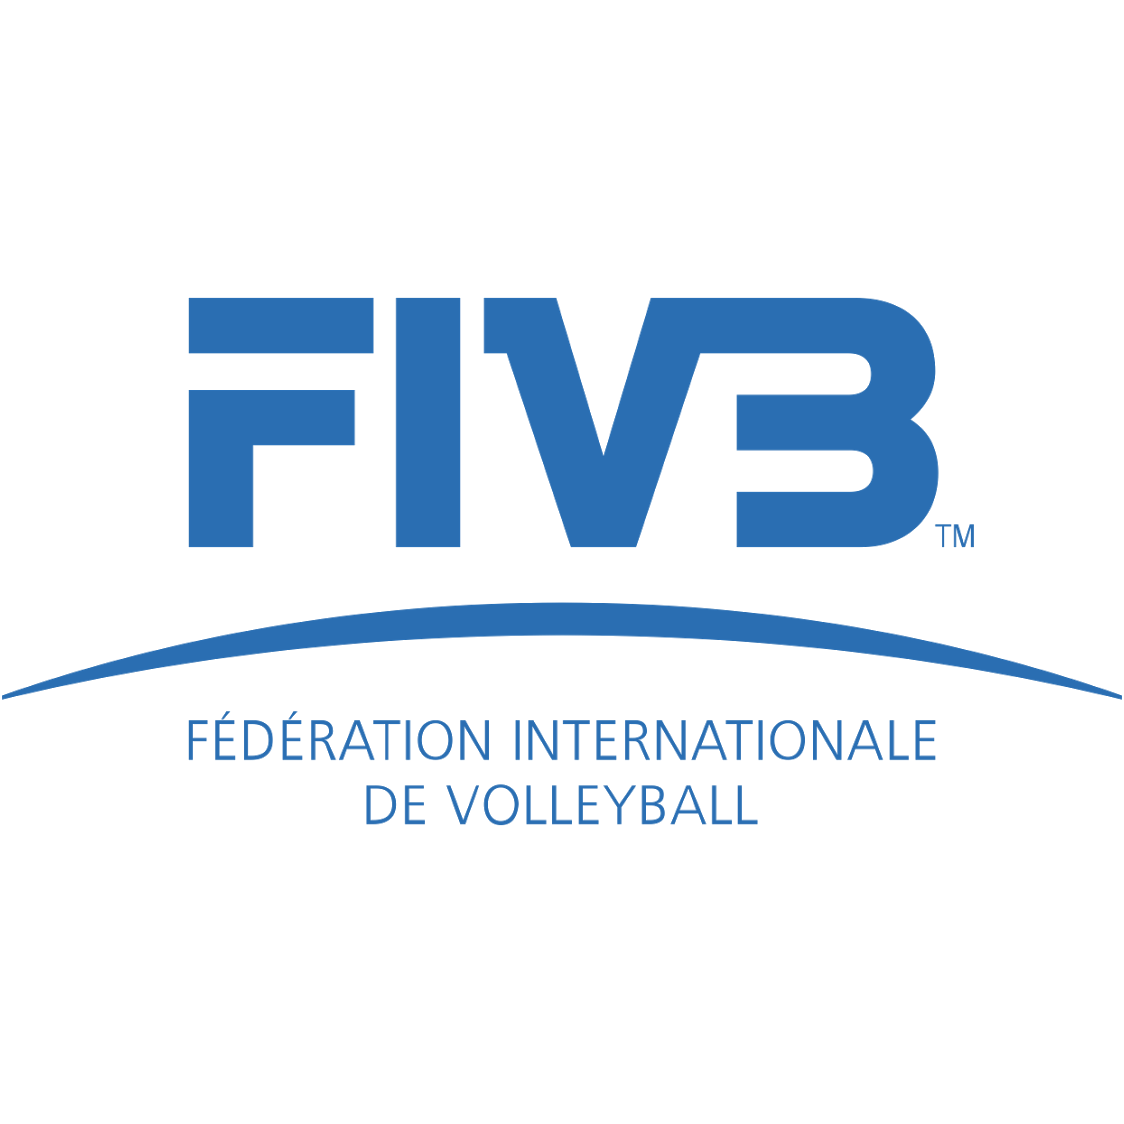 2014 FIVB Volleyball Women's World Championship